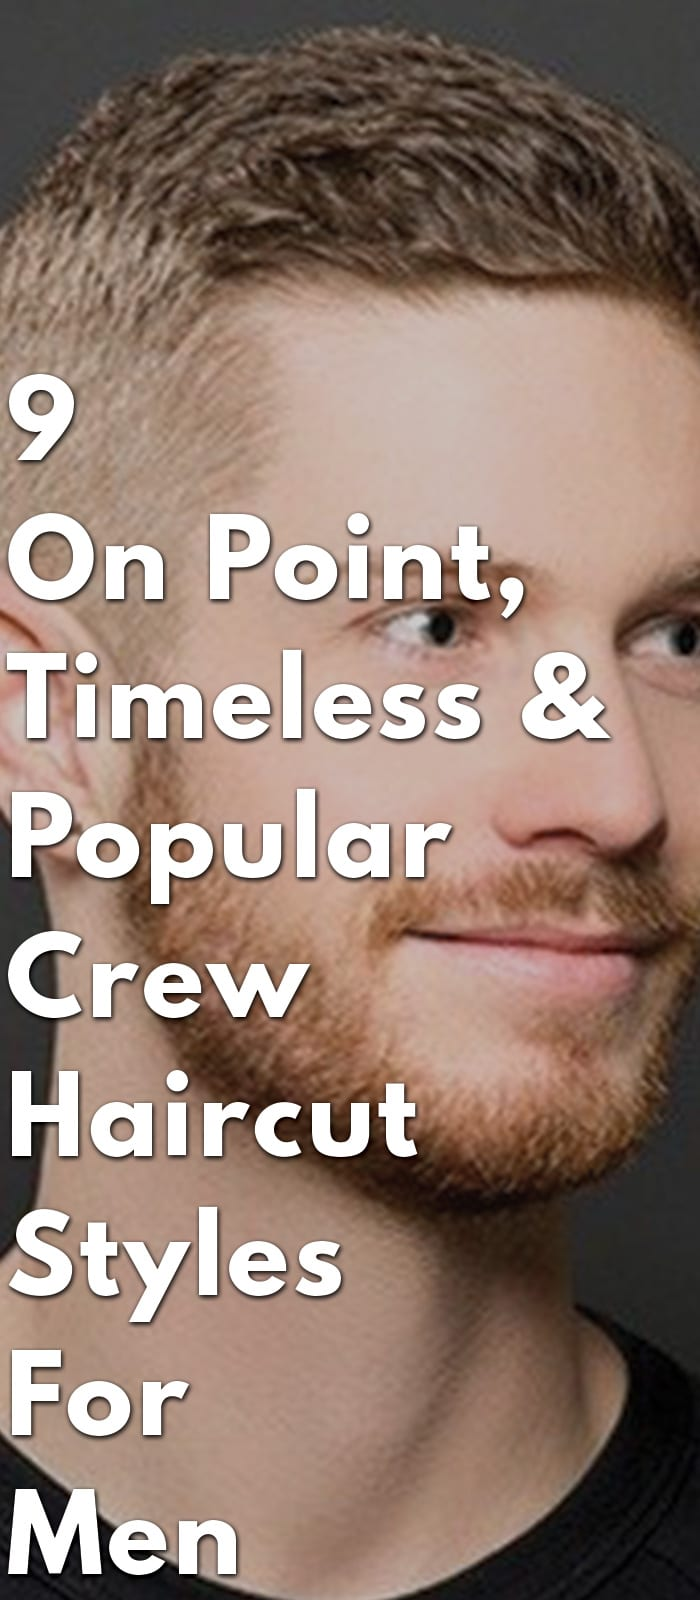 9-On-Point,-Timeless-&-Popular-Crew-Haircut-Styles-For-Men